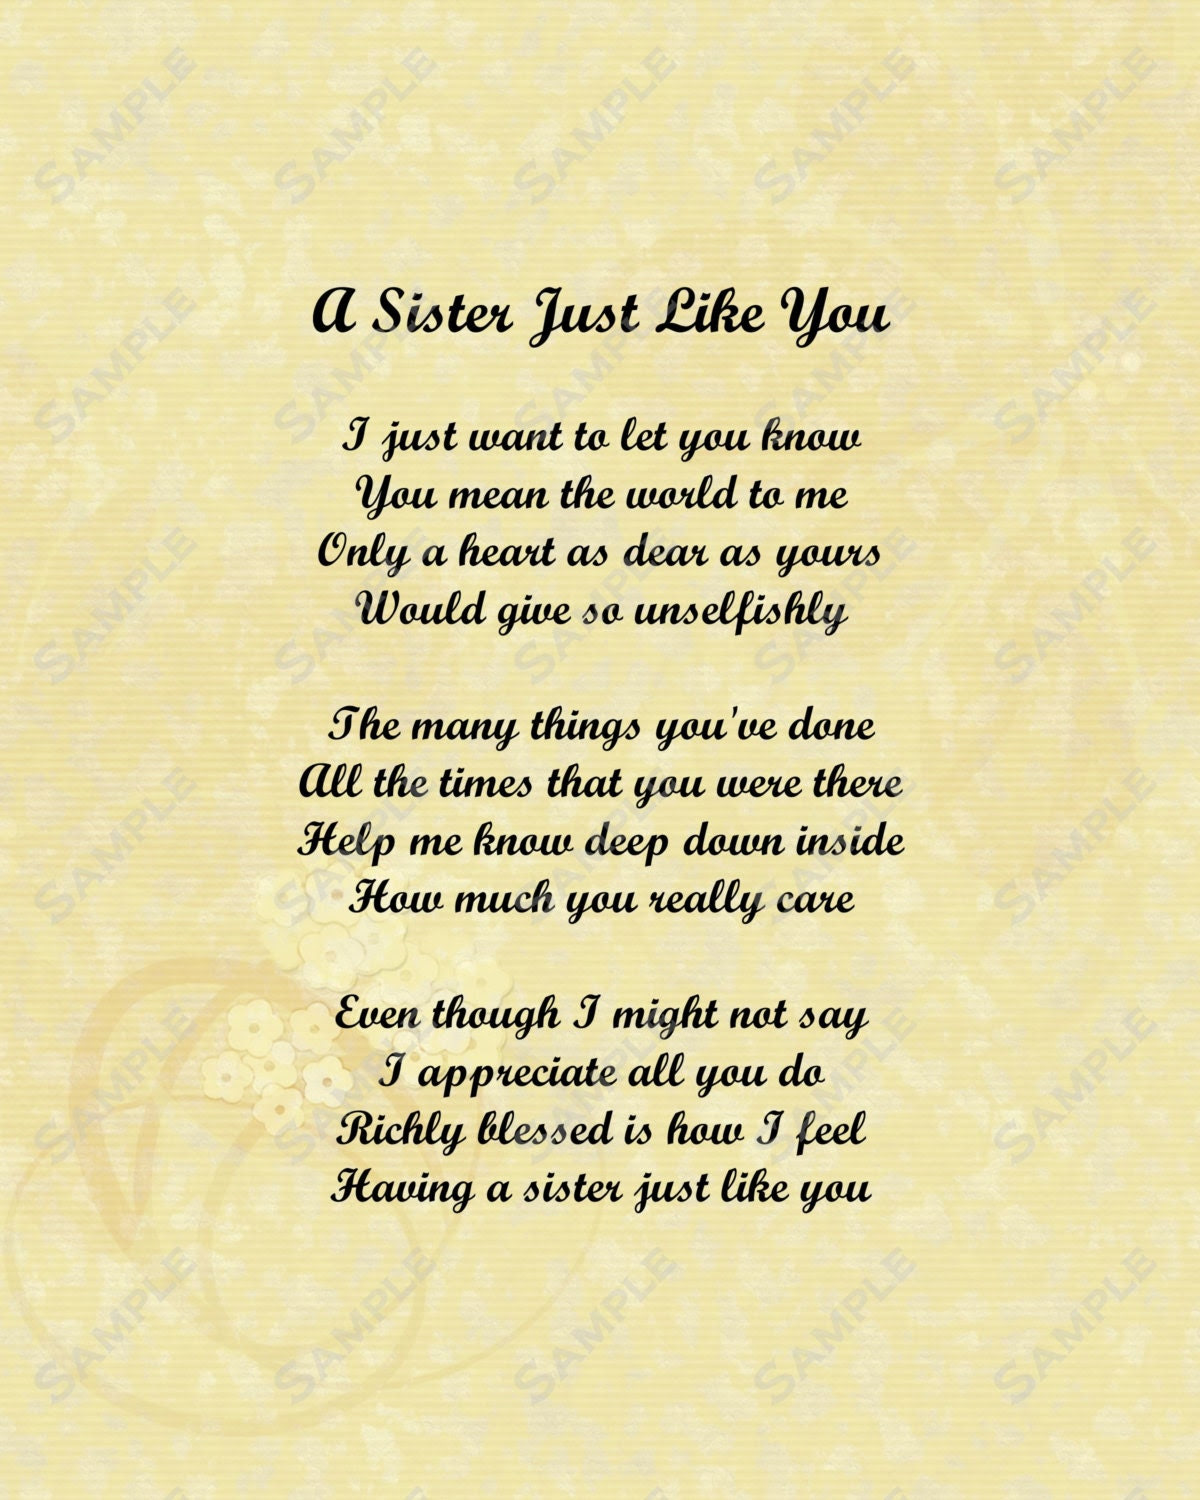 I Love You Sister Poems And Quotes I Love You Sister Poems I Love Love